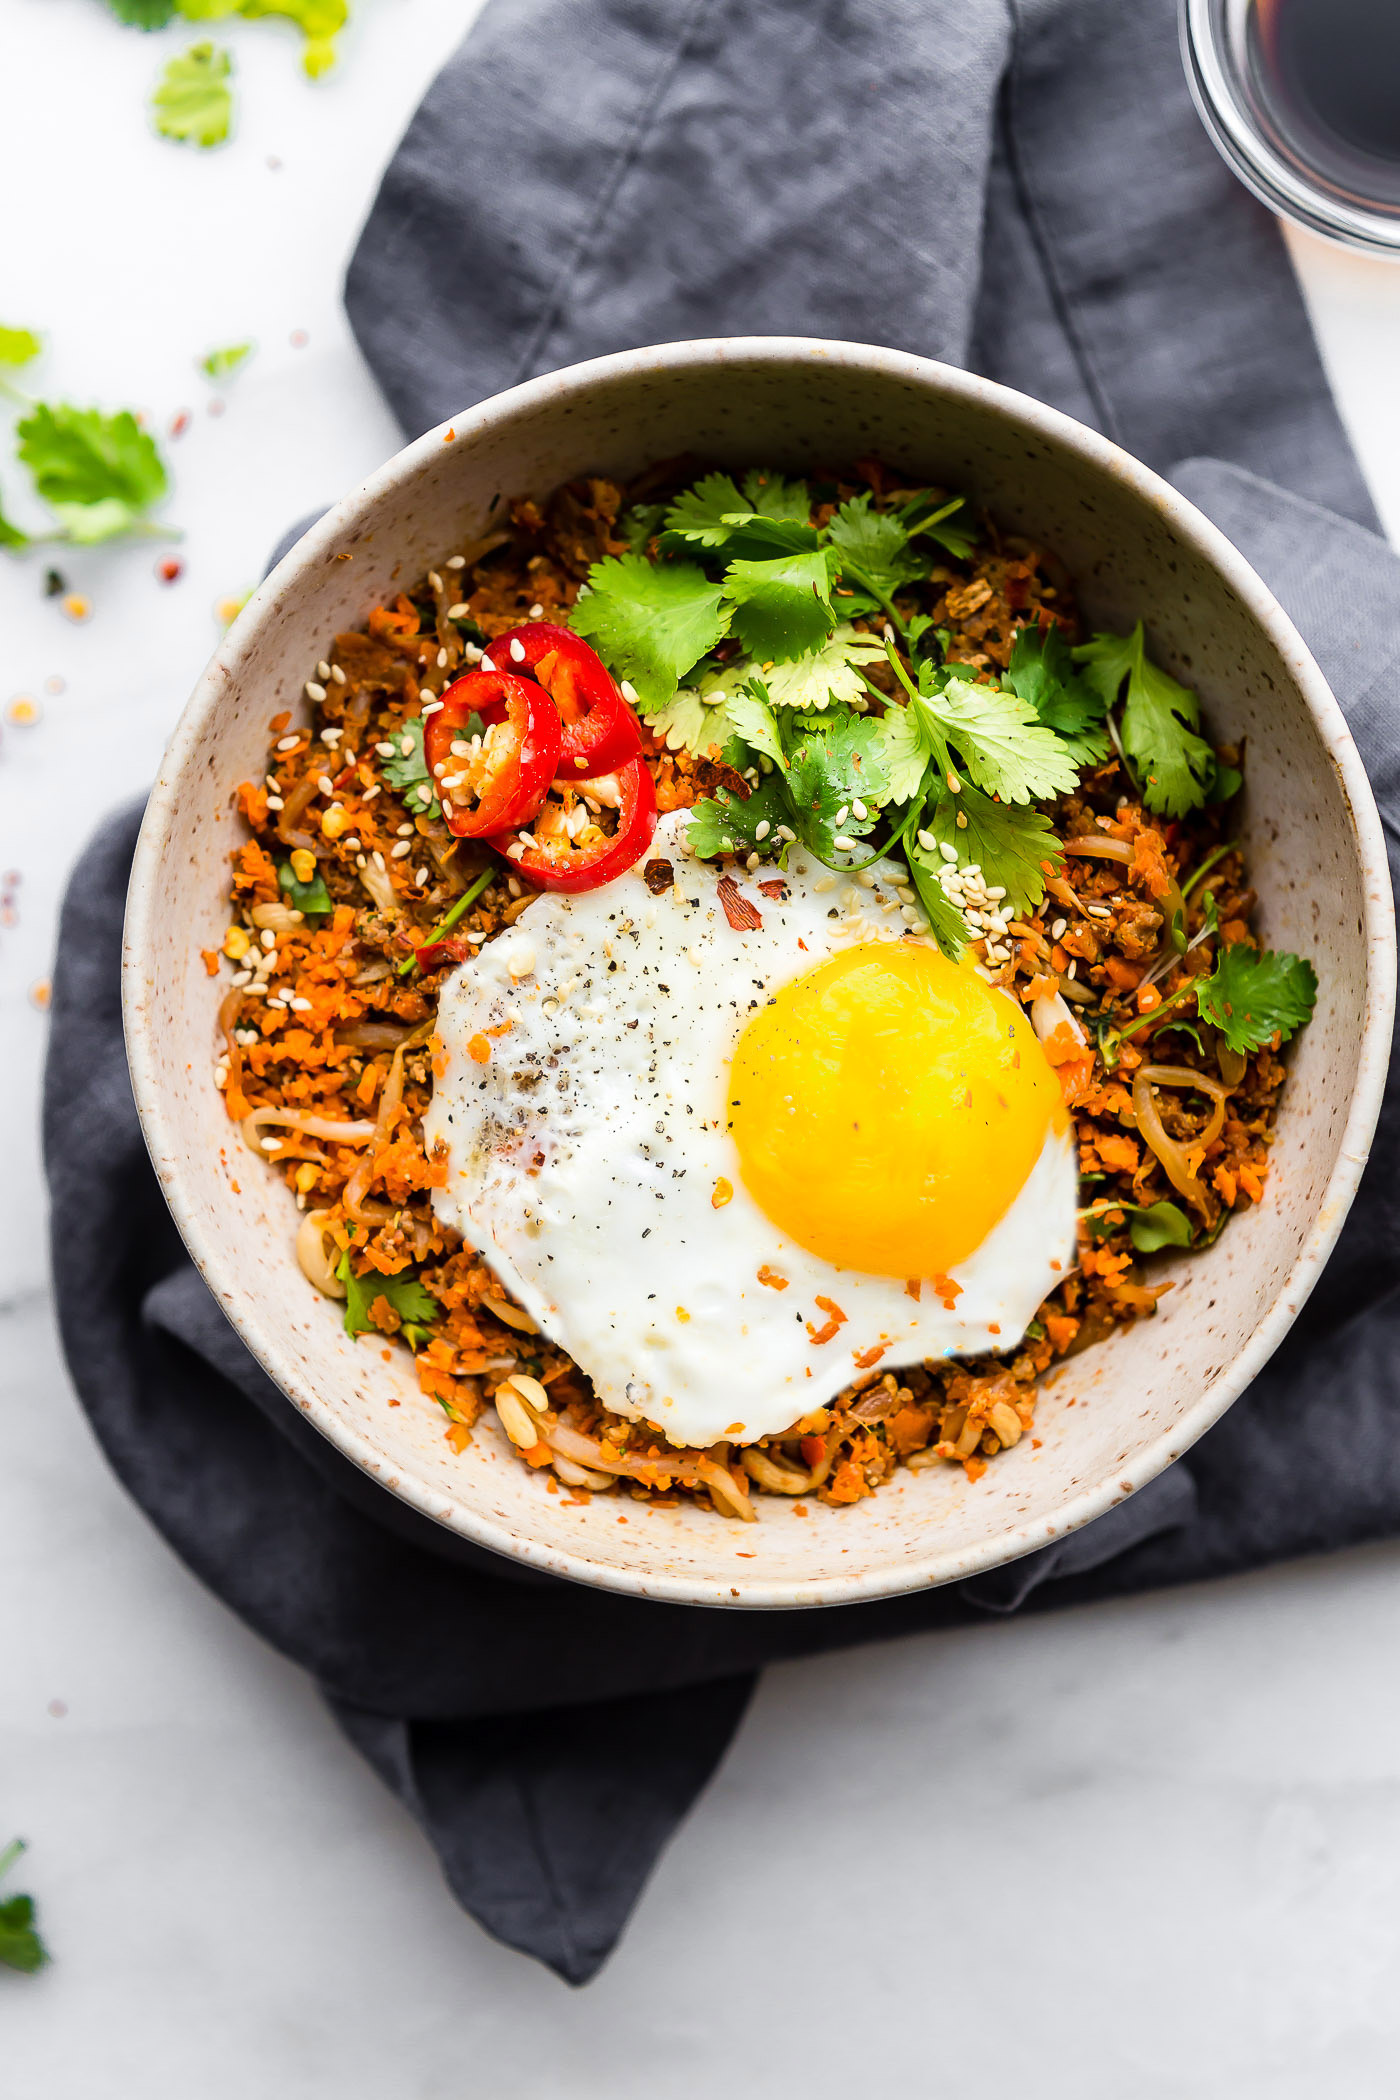 "This Quick Carrot Rice Breakfast Nasi Goreng is the perfect way to utilize those leftover veggies! A stir fried ""carrot rice"" mixed with egg and sausage. A Indonesian style breakfast Nasi Goreng that's paleo friendly, super flavorful, and packed full of protein and veggies! Cook and serve all in 30 minutes!"